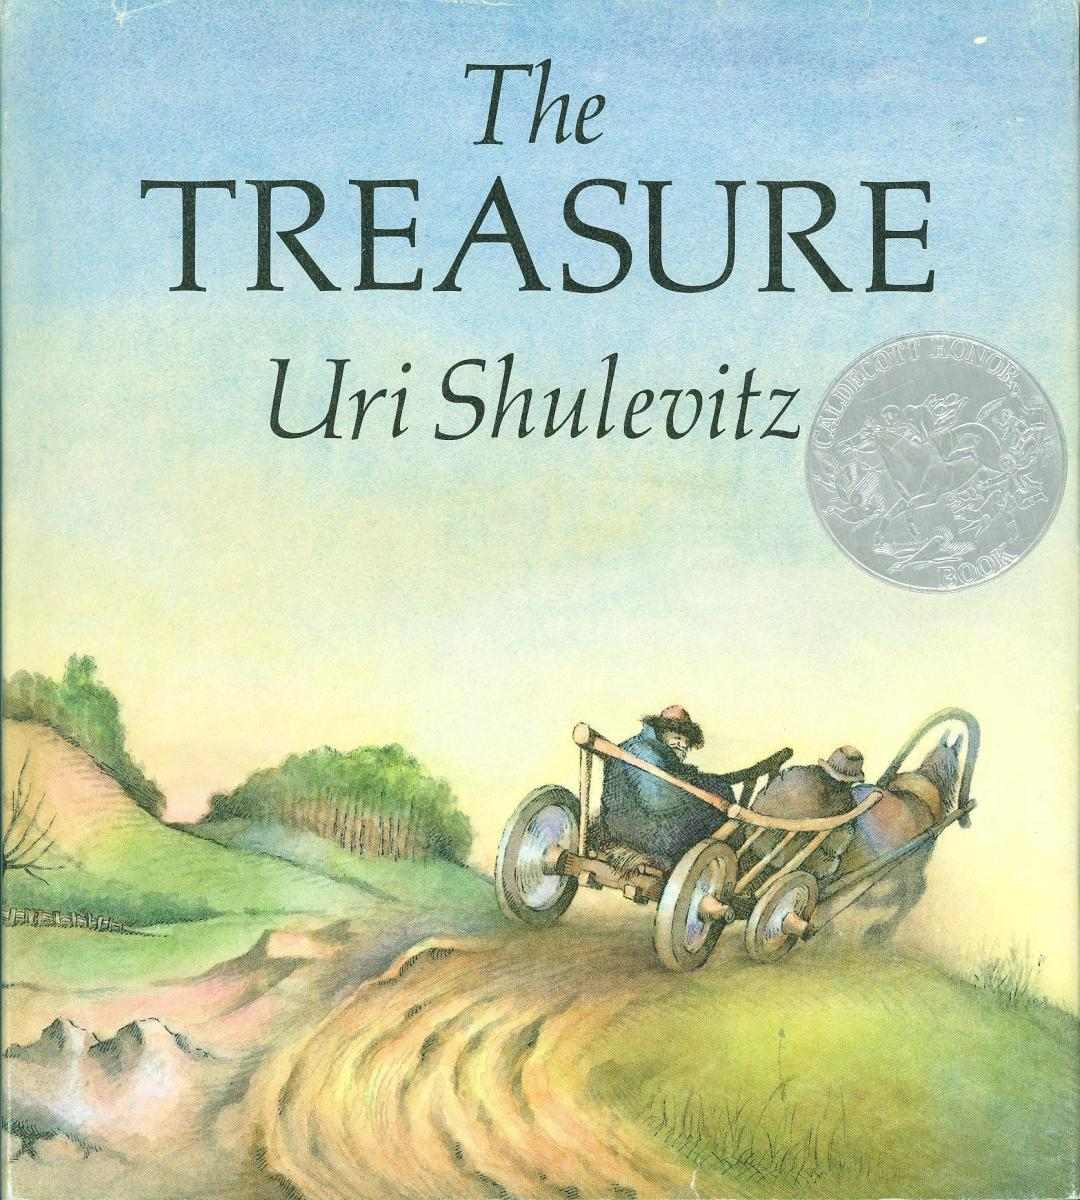 The Treasure - book cover image